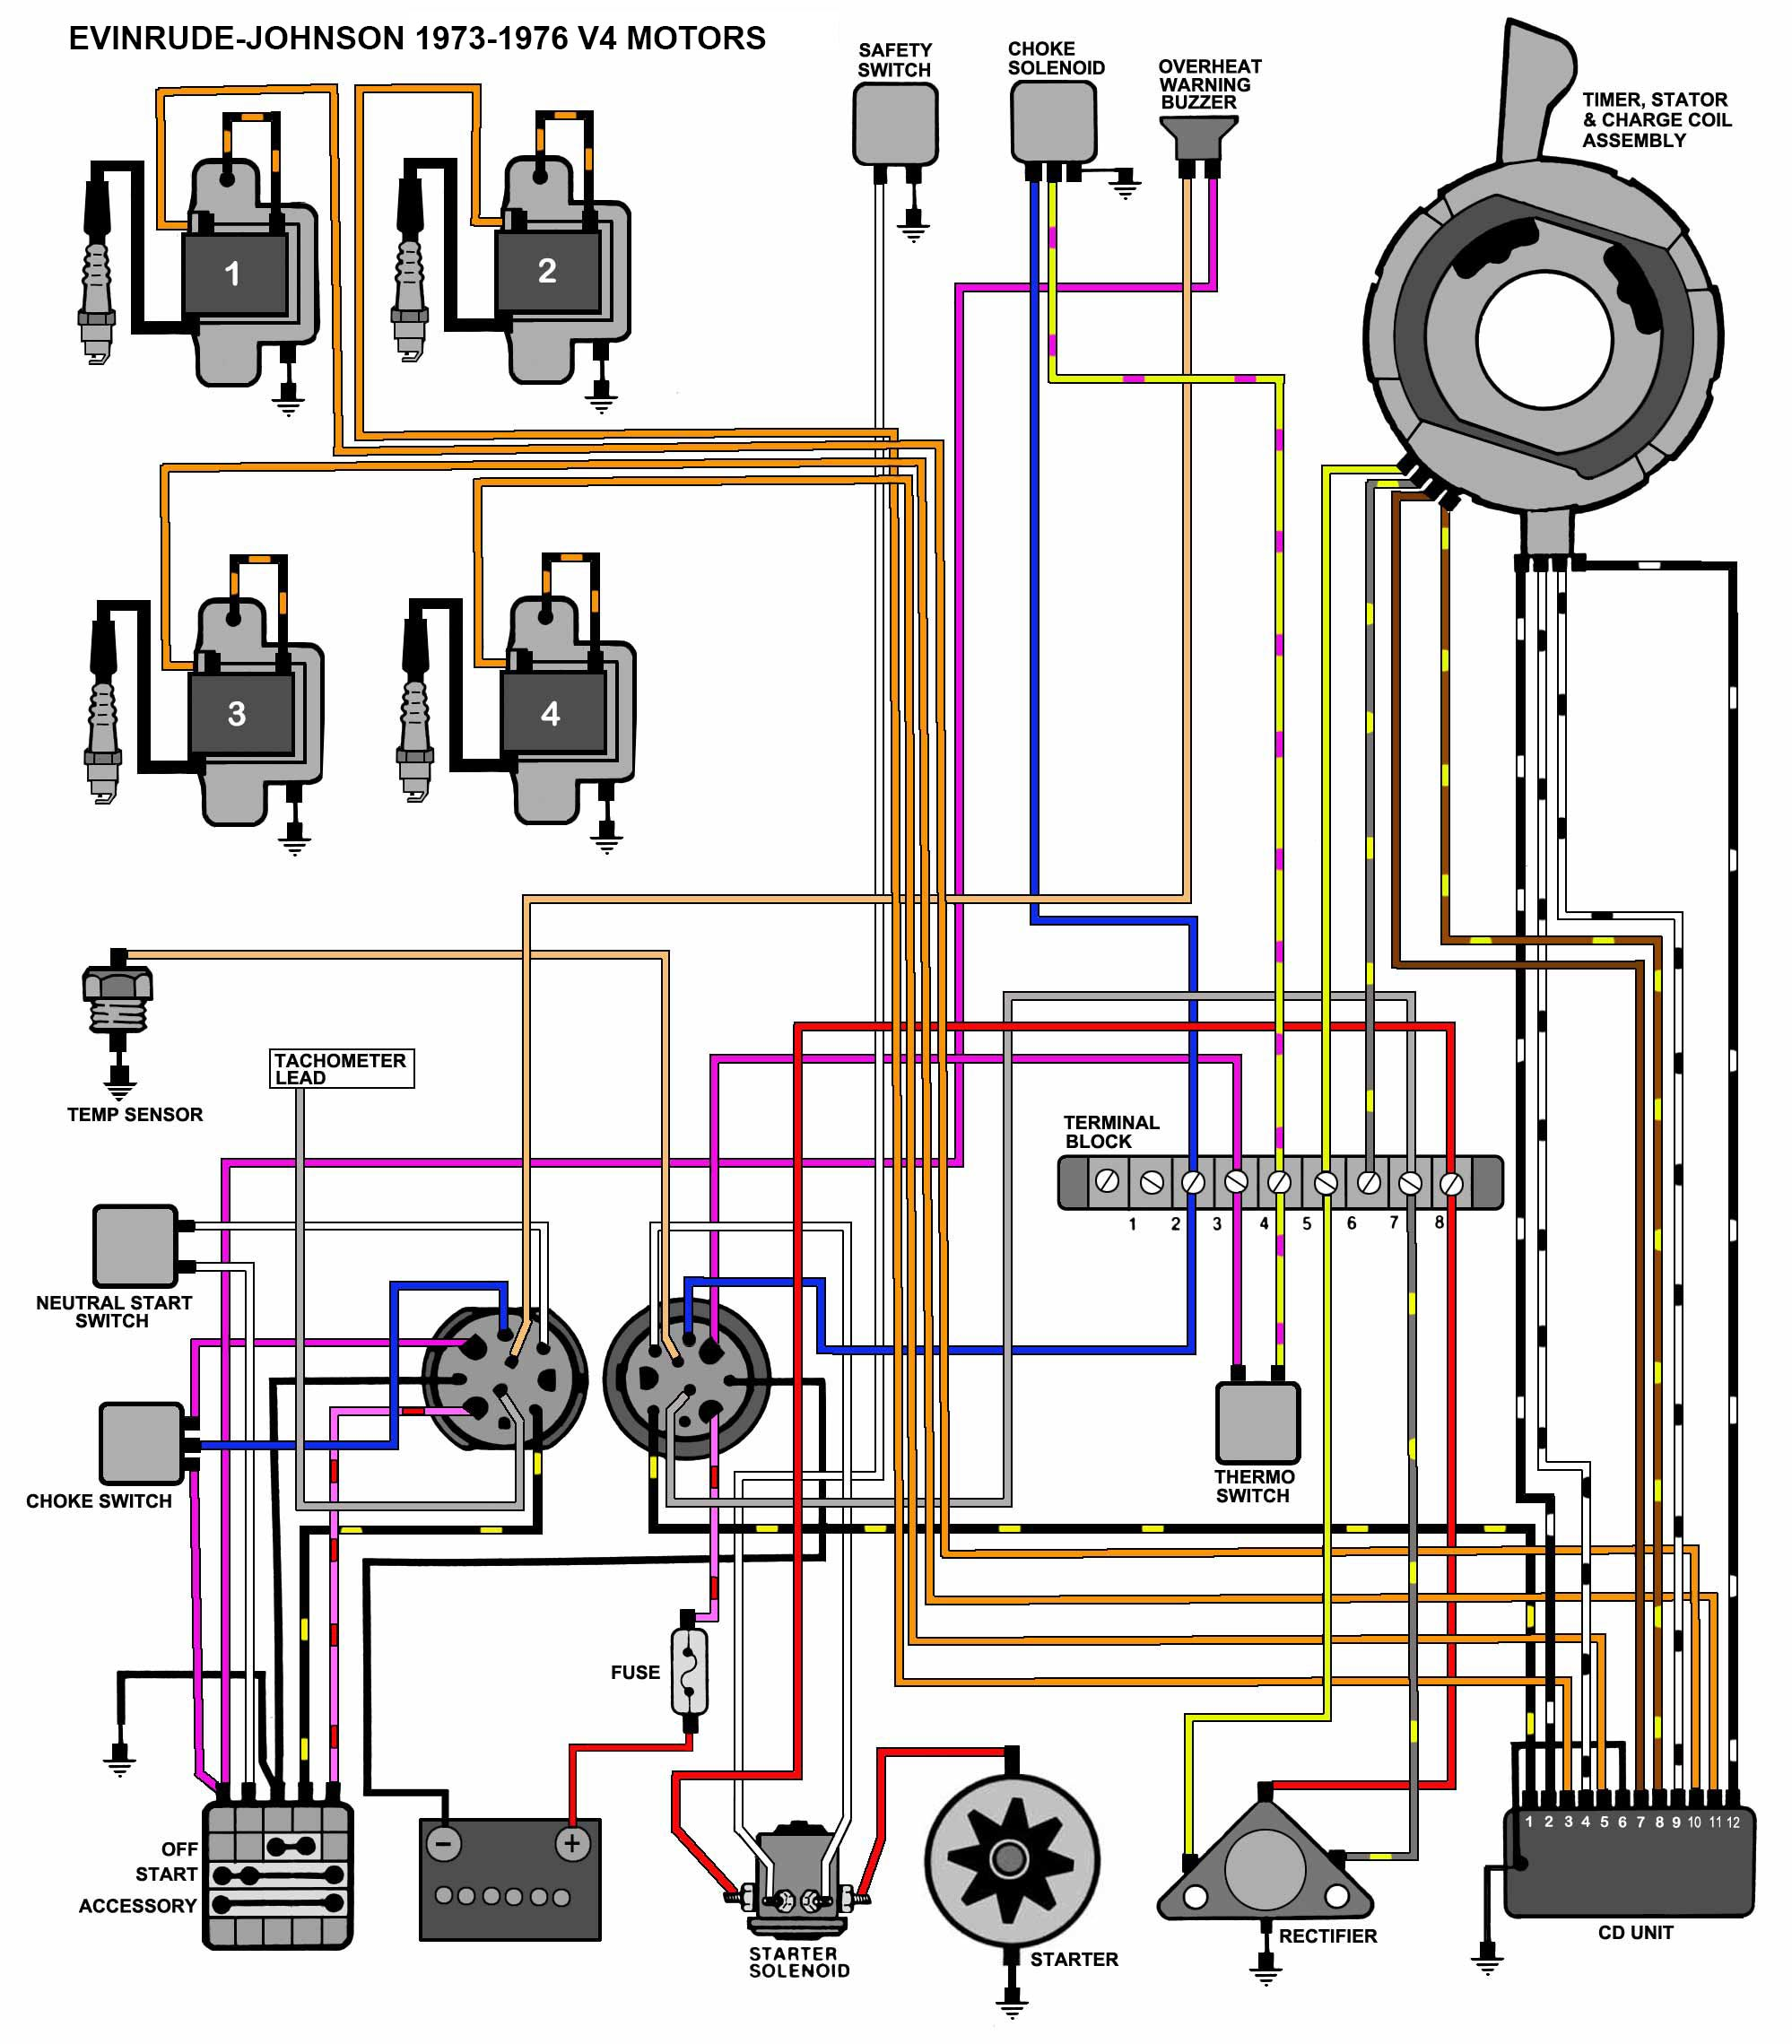 johnson 115 wiring diagram 17 19 sg dbd de \u2022evinrude johnson outboard wiring diagrams mastertech marine rh maxrules com 2000 johnson 115 wiring diagram johnson wiring harness diagram